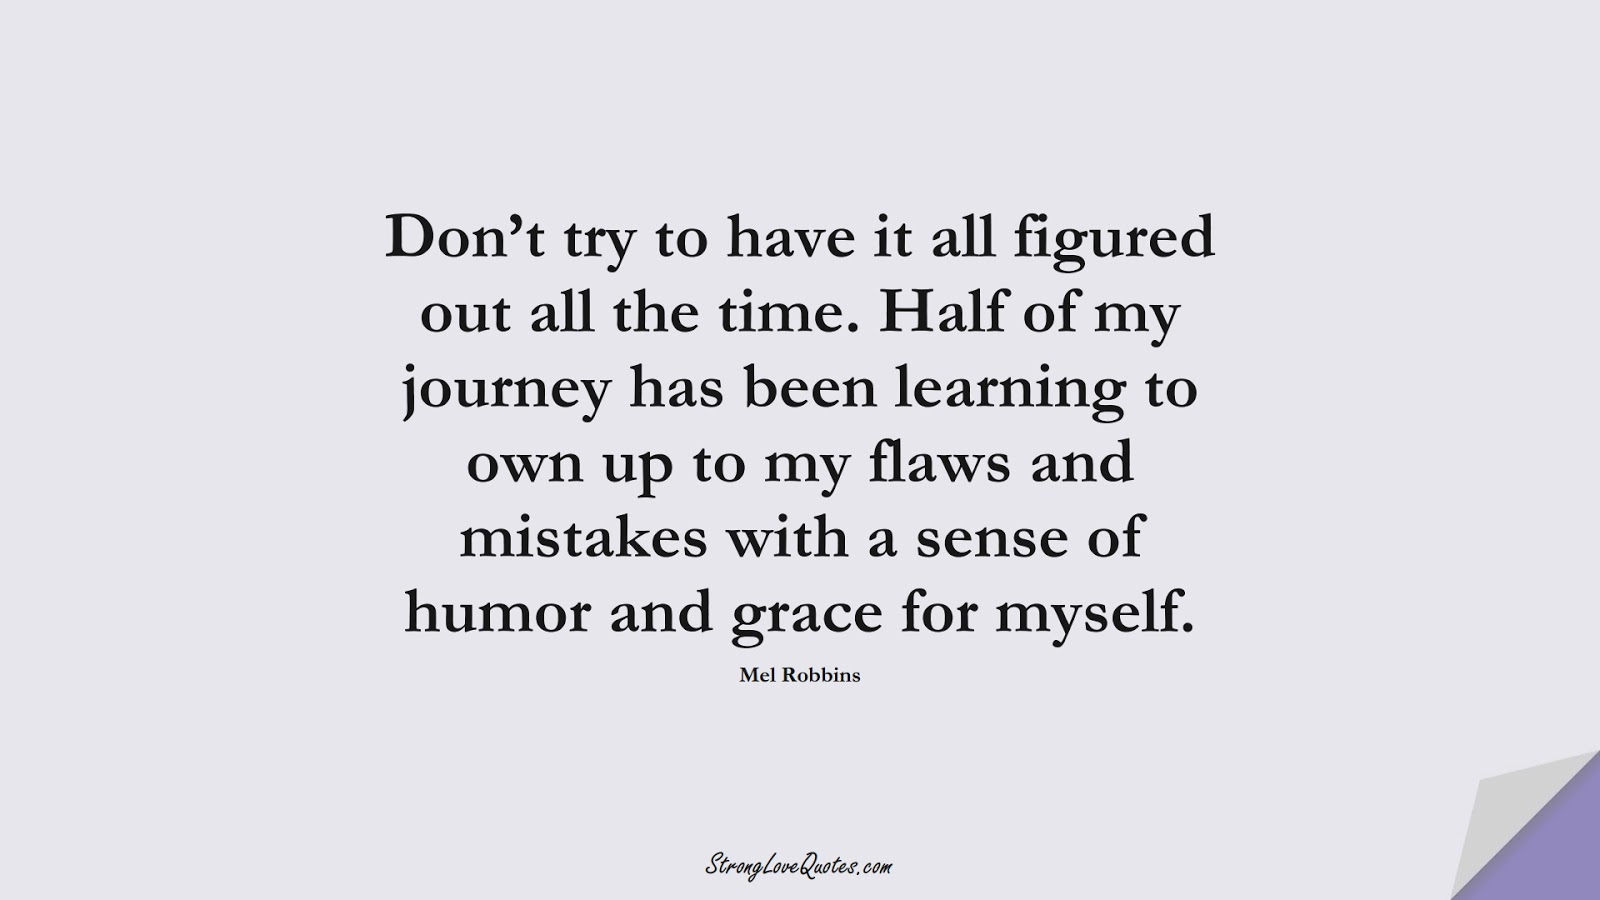 Don't try to have it all figured out all the time. Half of my journey has been learning to own up to my flaws and mistakes with a sense of humor and grace for myself. (Mel Robbins);  #LearningQuotes